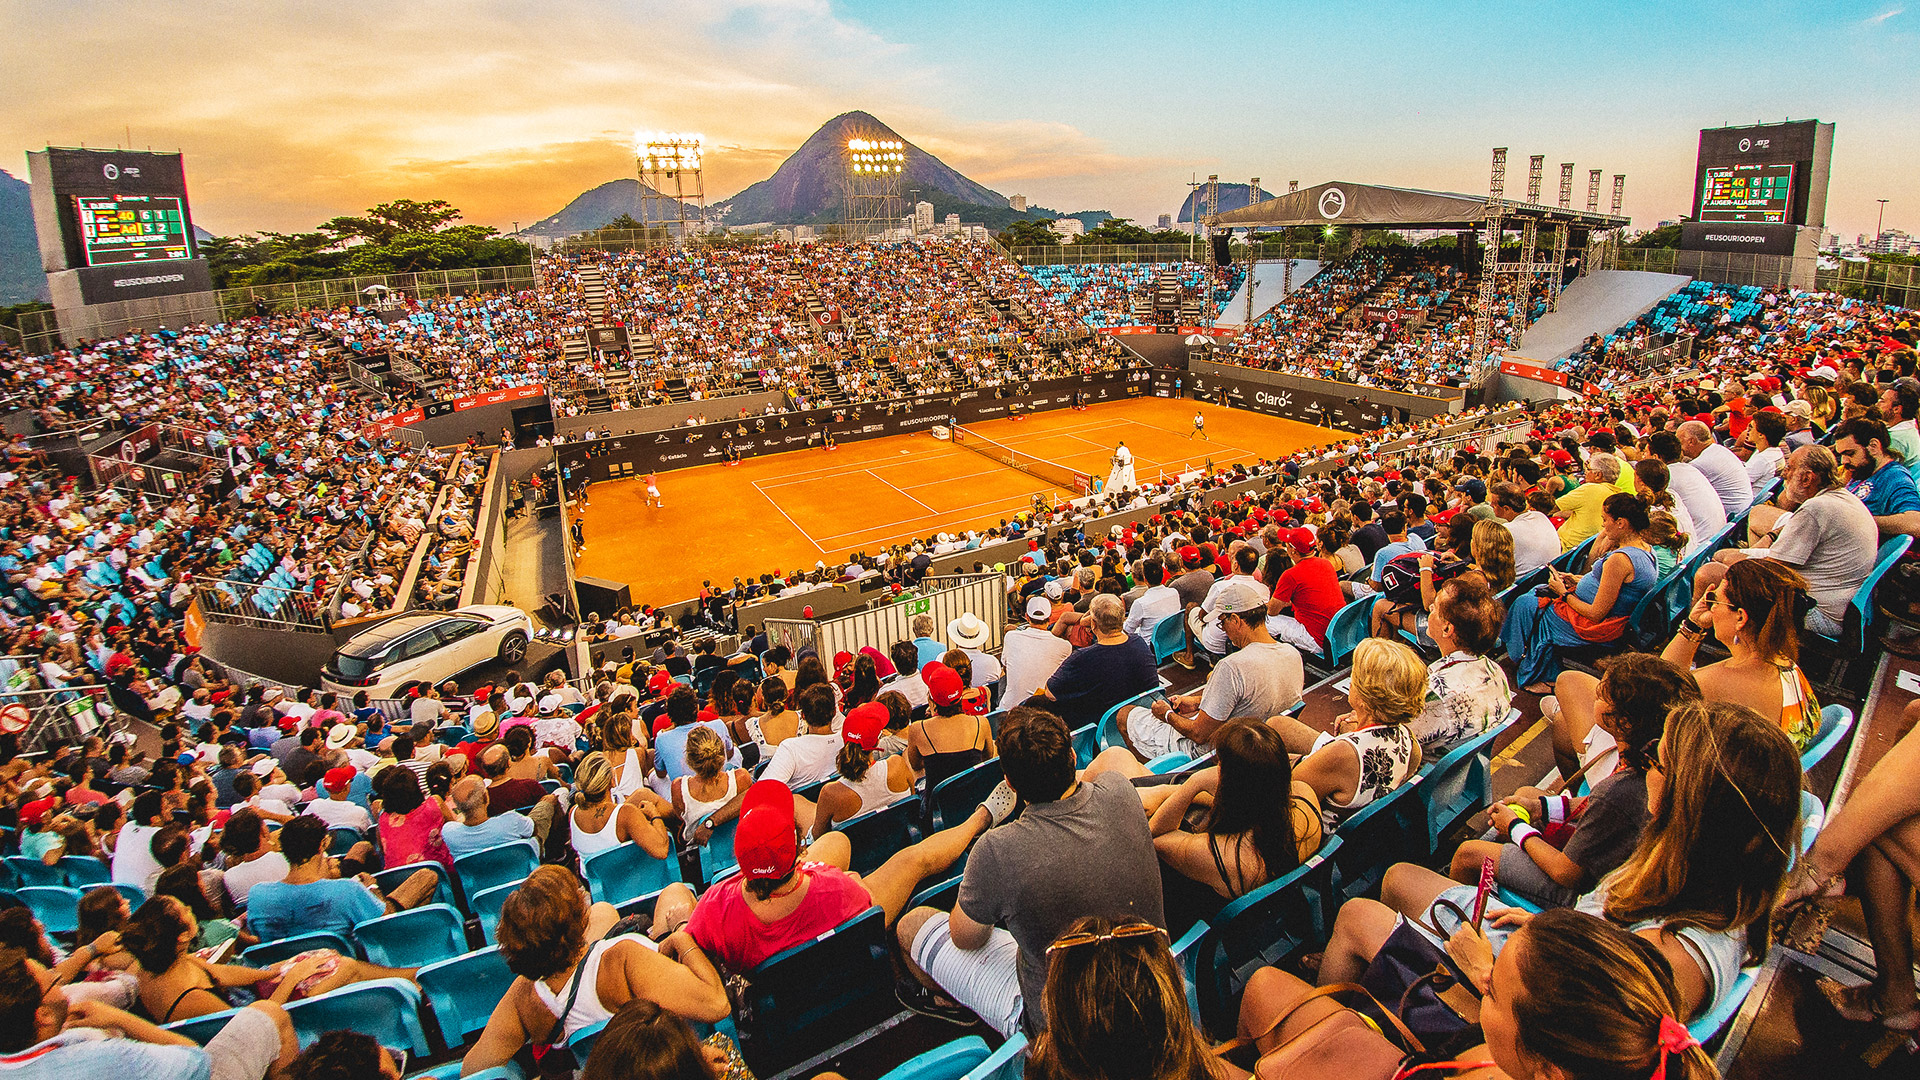 2020 Rio Open Presented by Claro - 23 February Main Coverage and Highlights